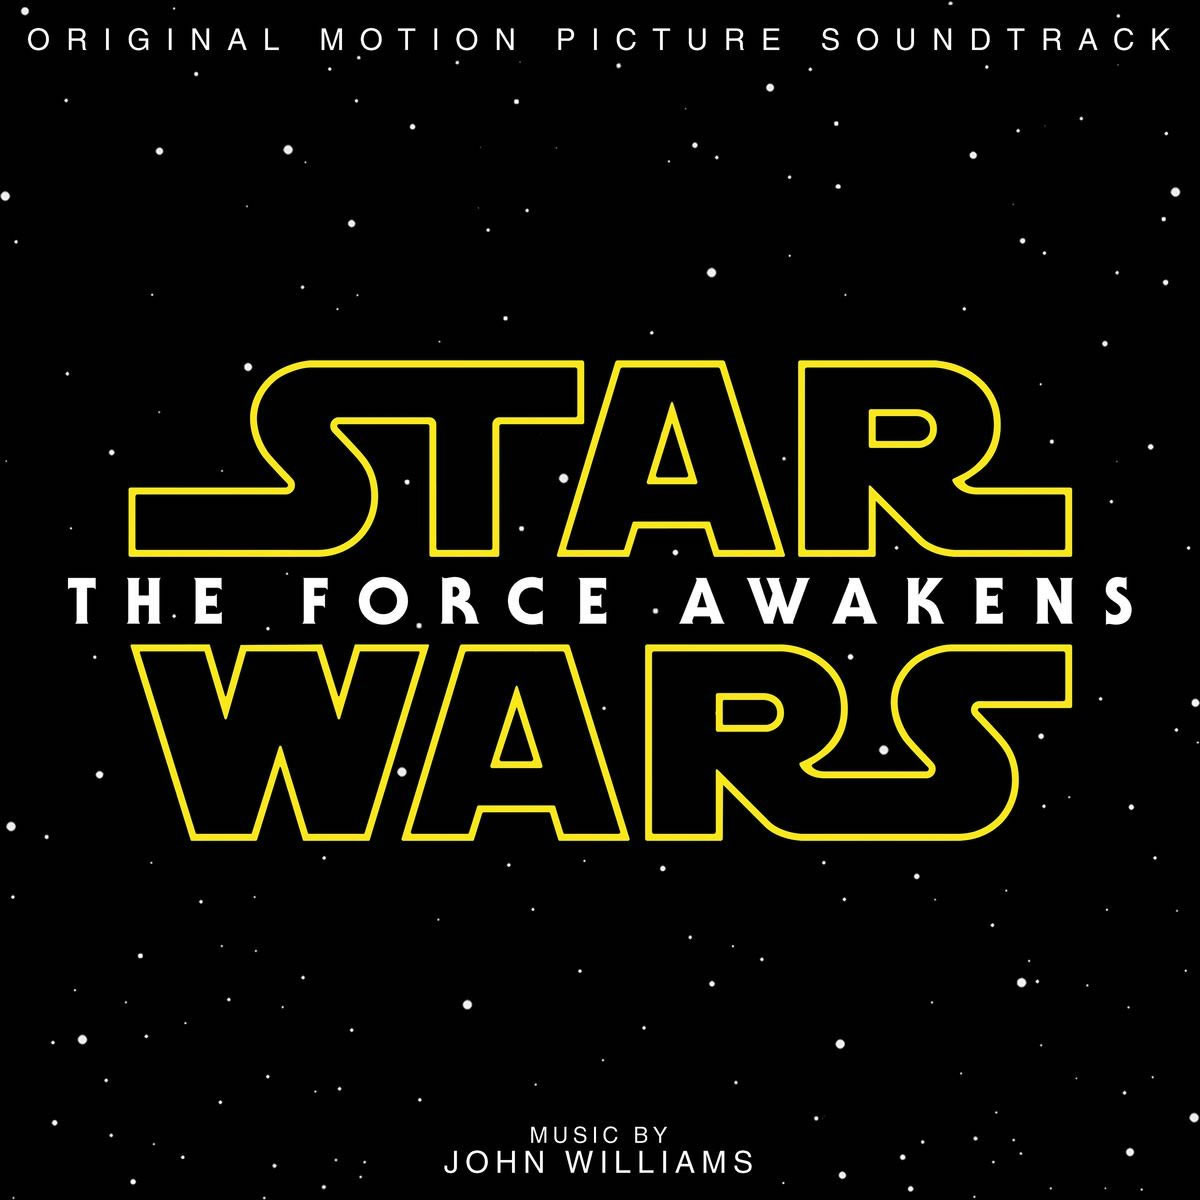 STAR WARS: THE FORCE AWAKENS  - THE ORIGINAL MOTION PICTURE SOUNDTRACK (AUDIO CD)